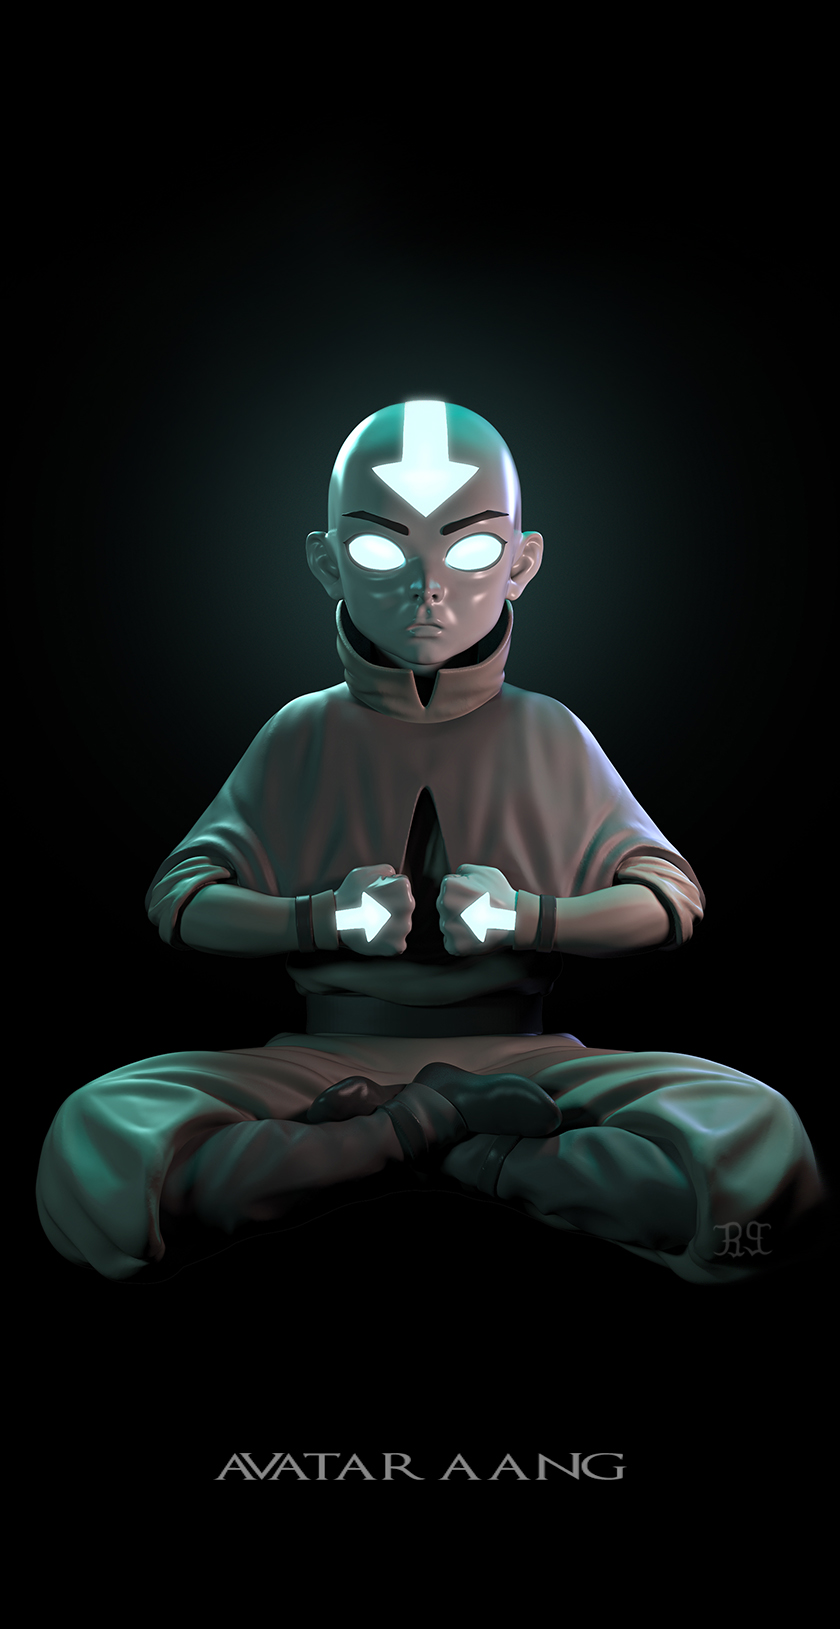 Avatar Aang The Last Airbender Zbrushcentral